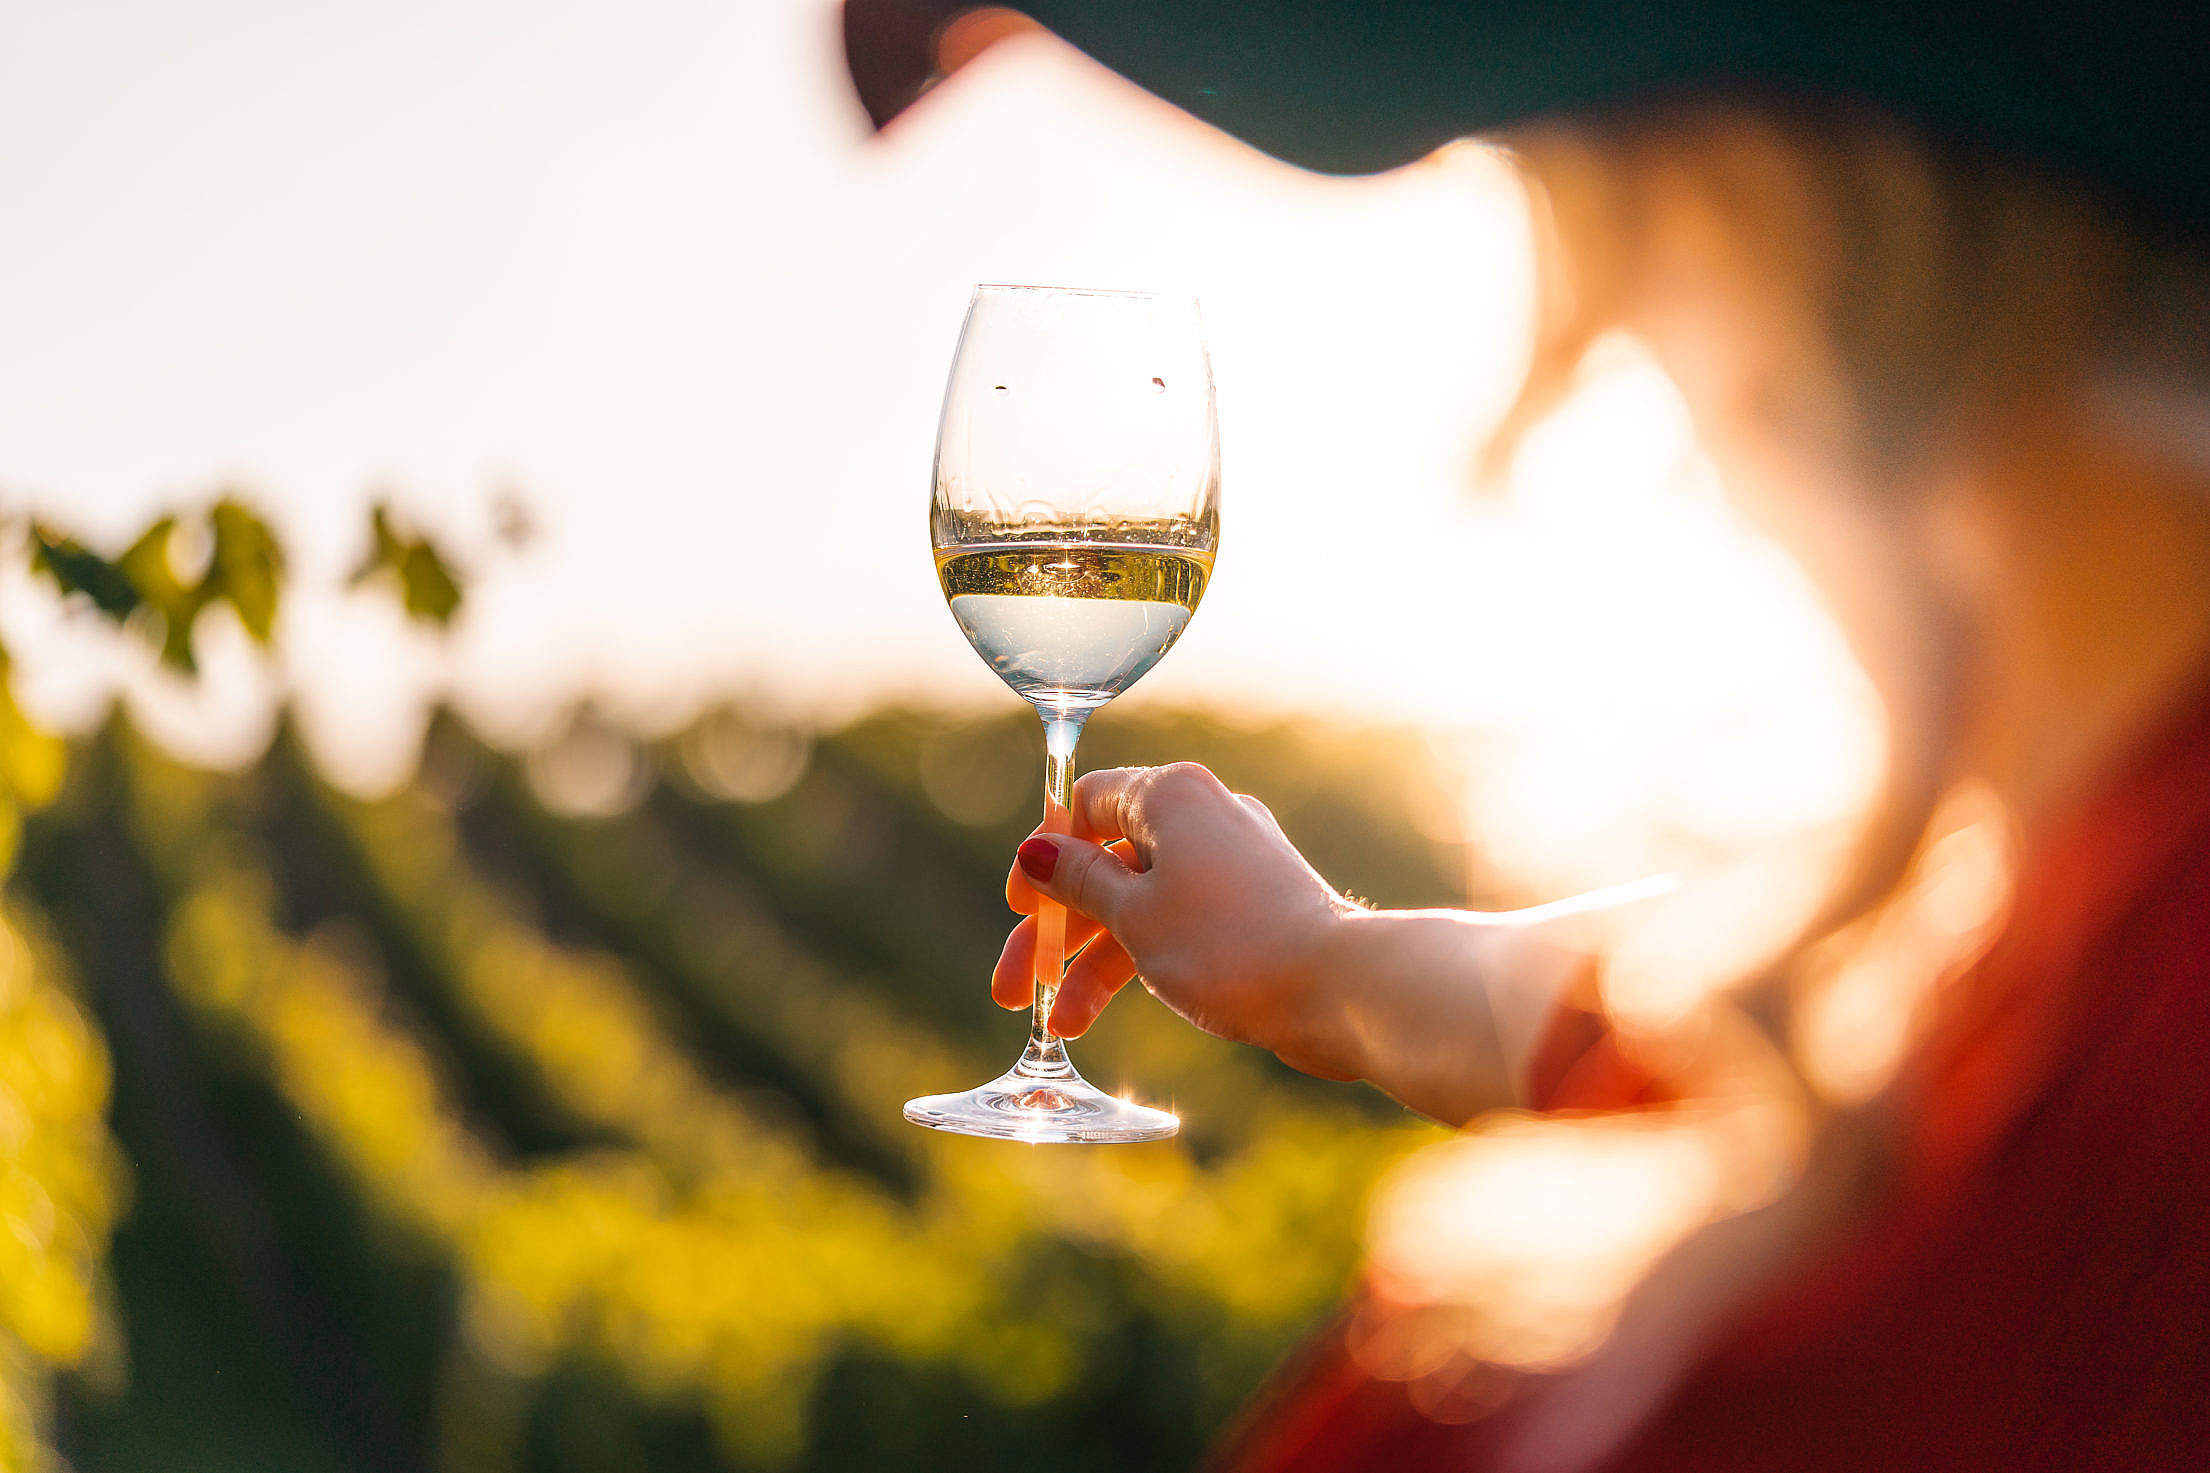 Woman Looking at a Glass of Wine Free Stock Photo